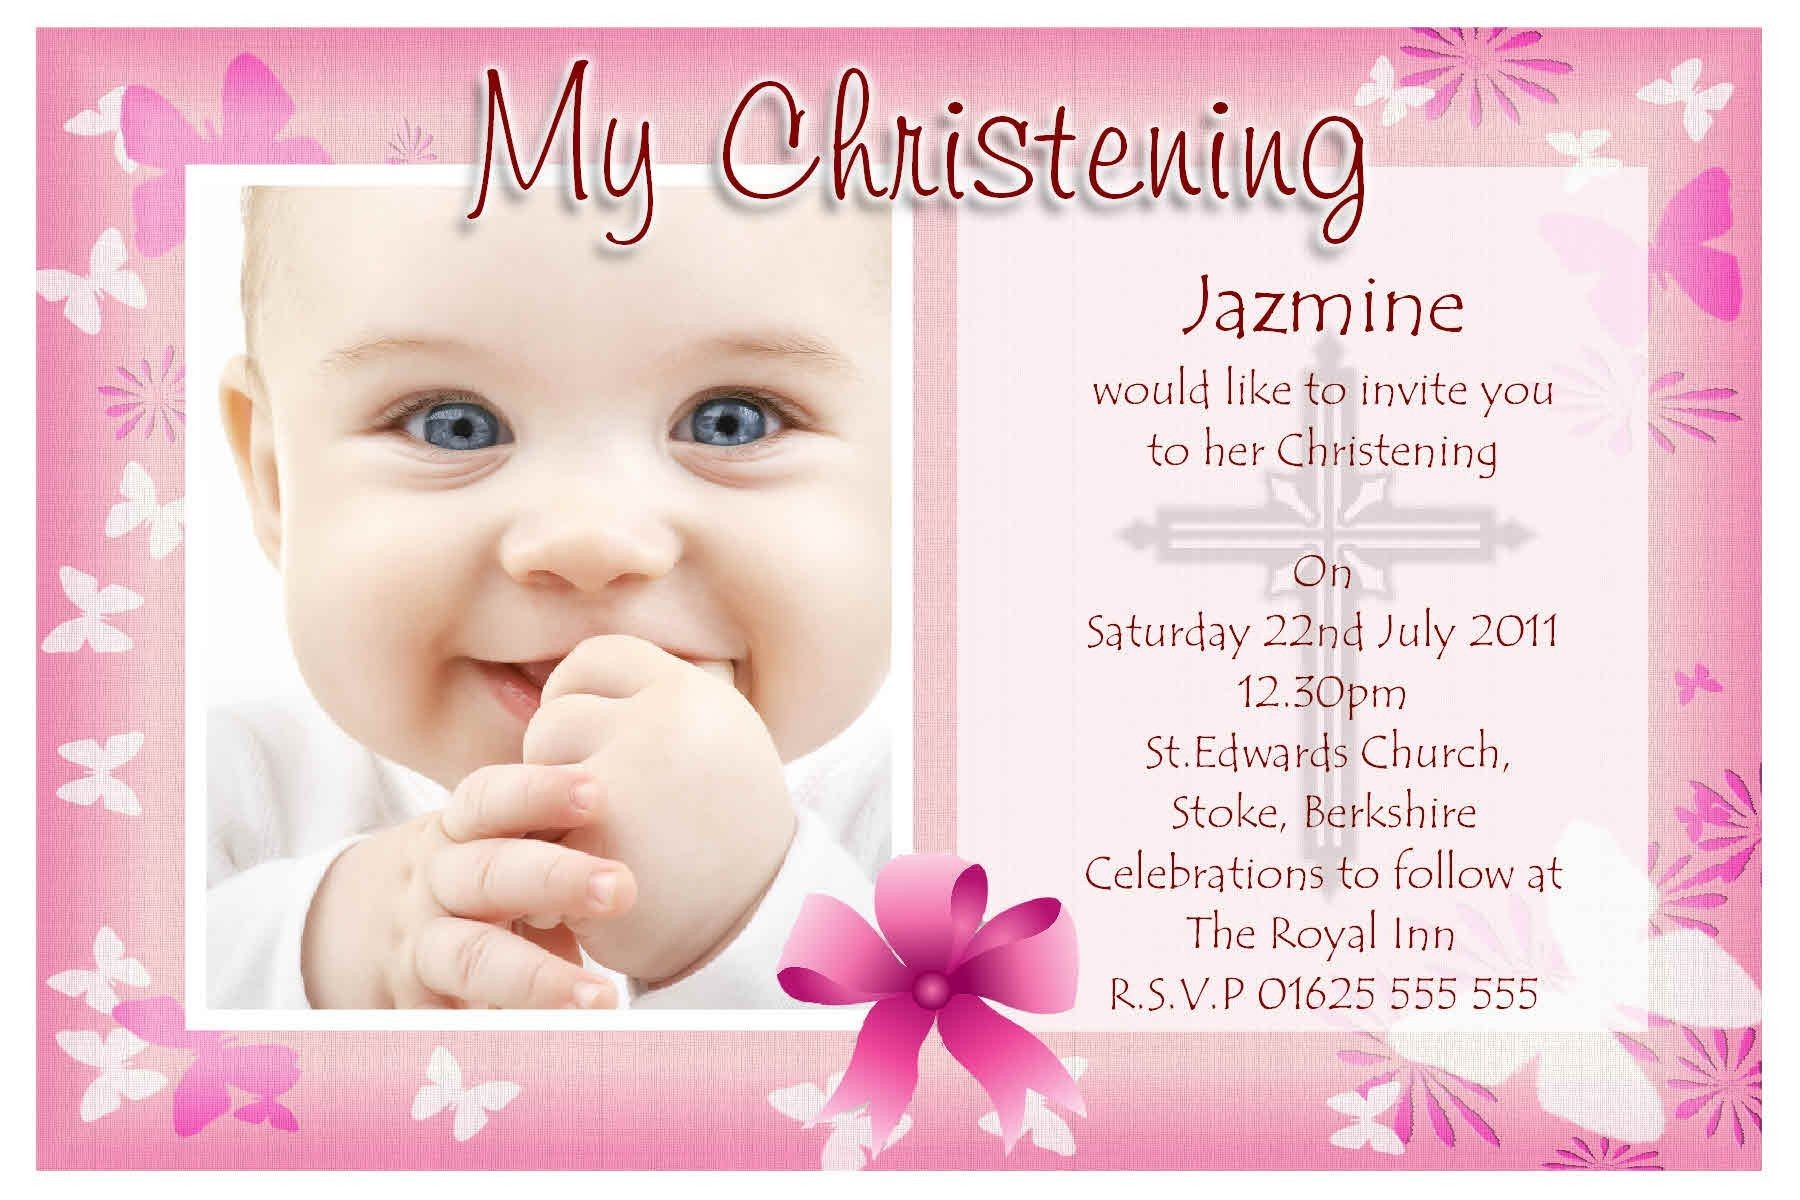 Invitation Card For Christening Background Png 5 Png Image